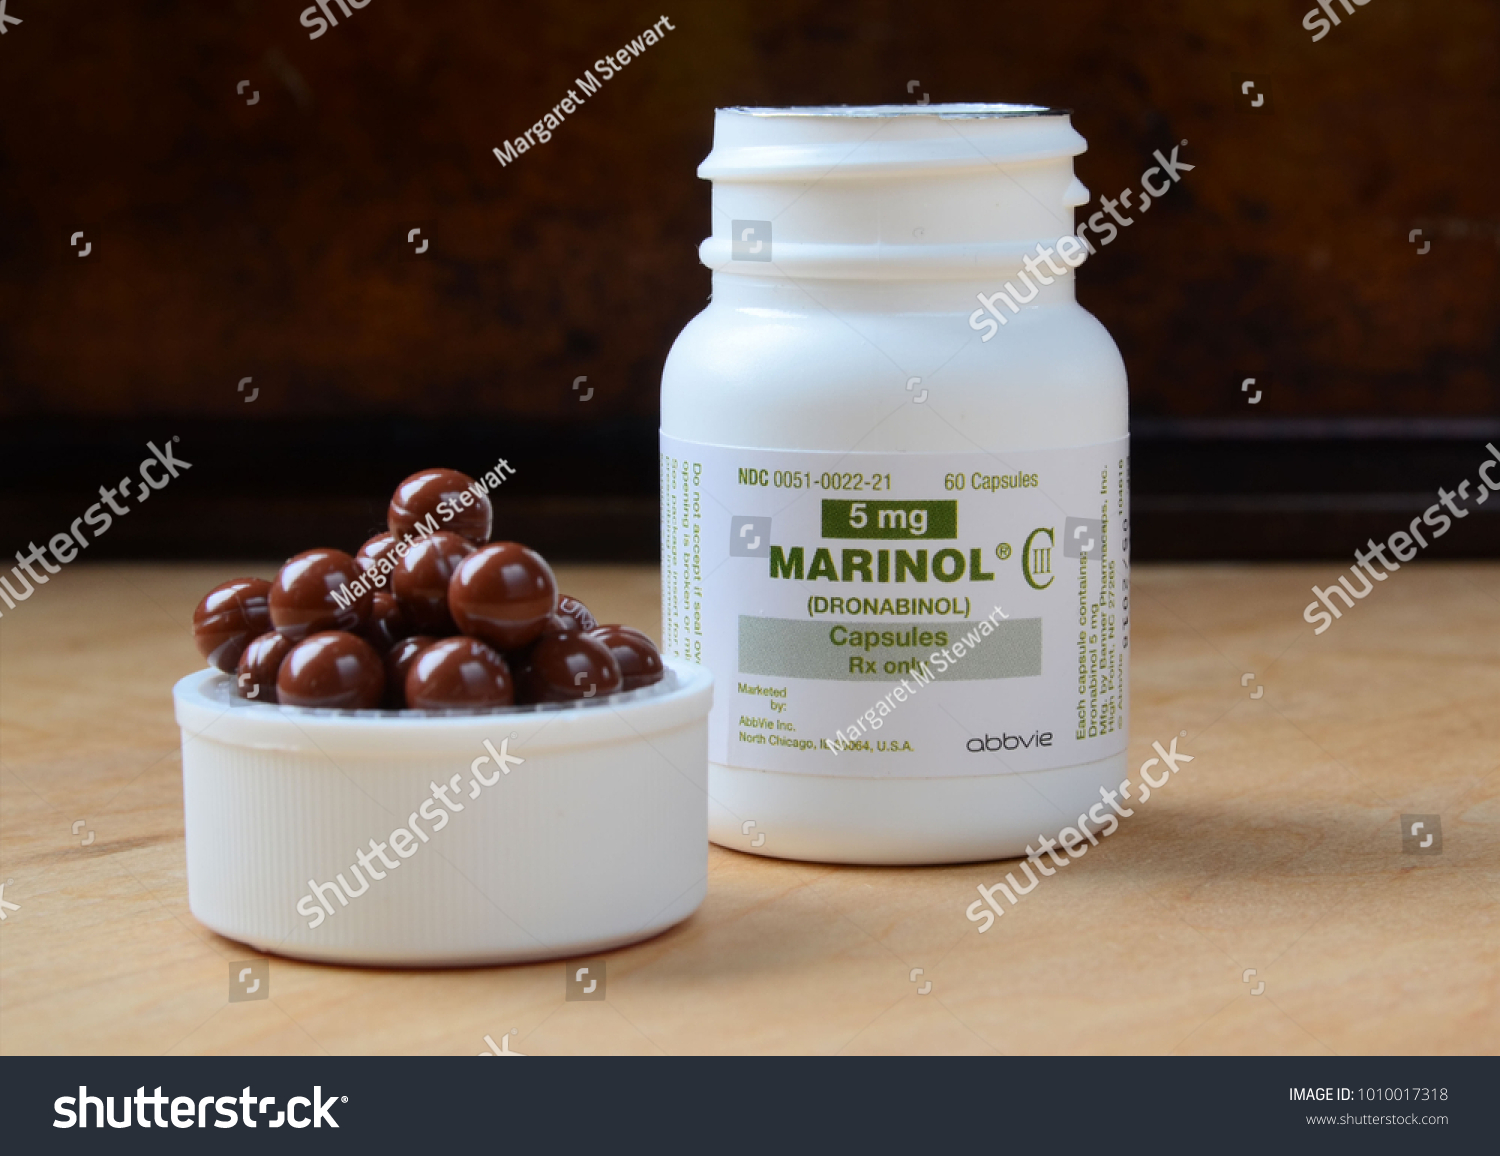 Marinol Marinol new photo